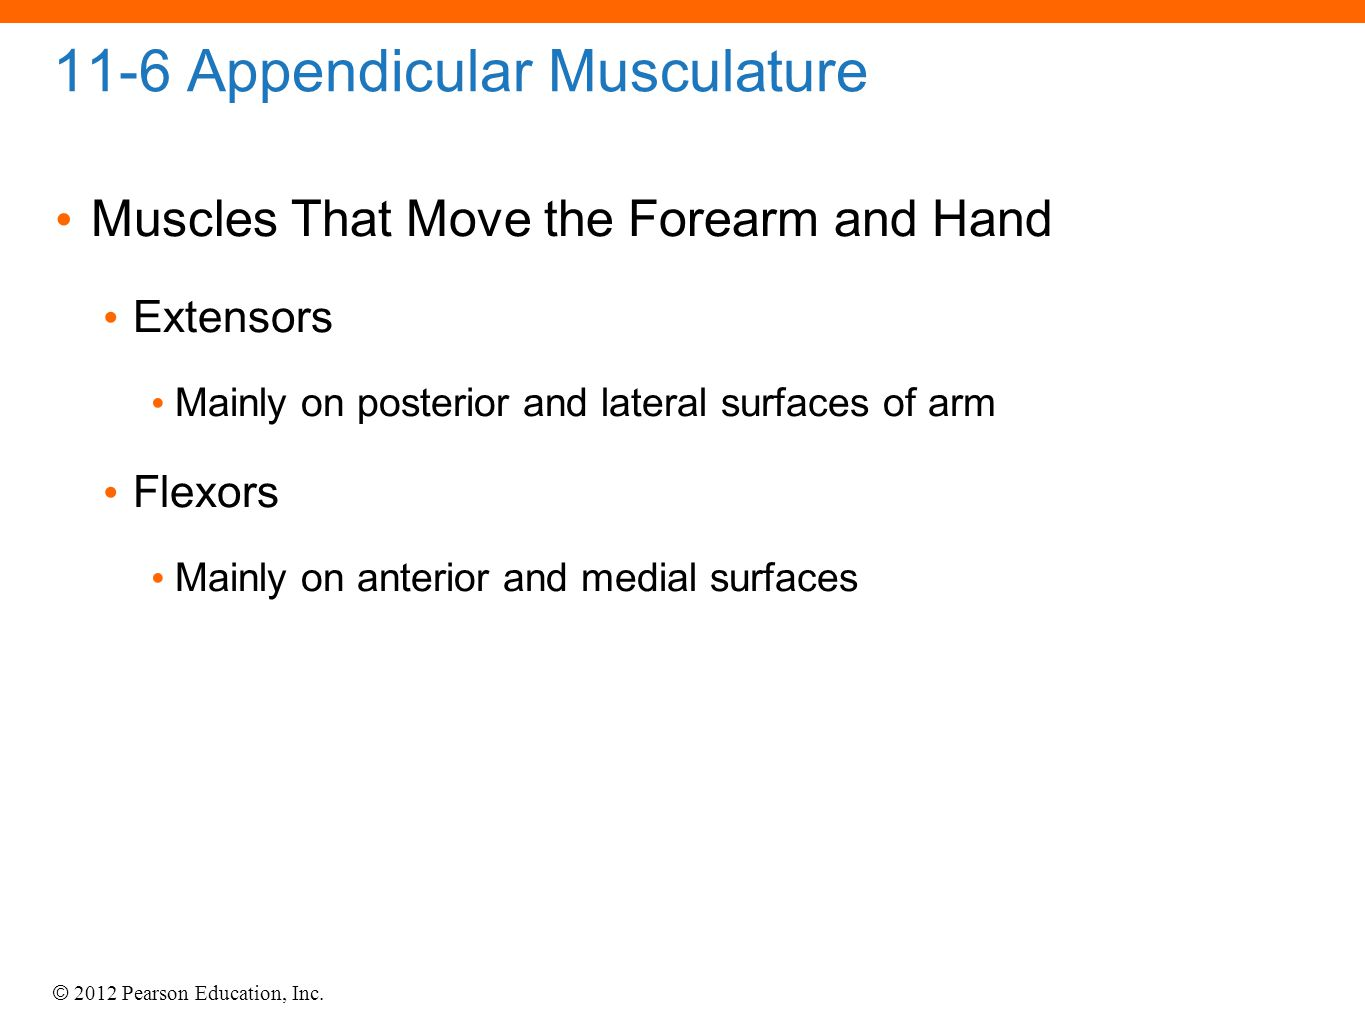 © 2012 Pearson Education, Inc. 11-6 Appendicular Musculature Muscles That Move the Forearm and Hand Extensors Mainly on posterior and lateral surfaces